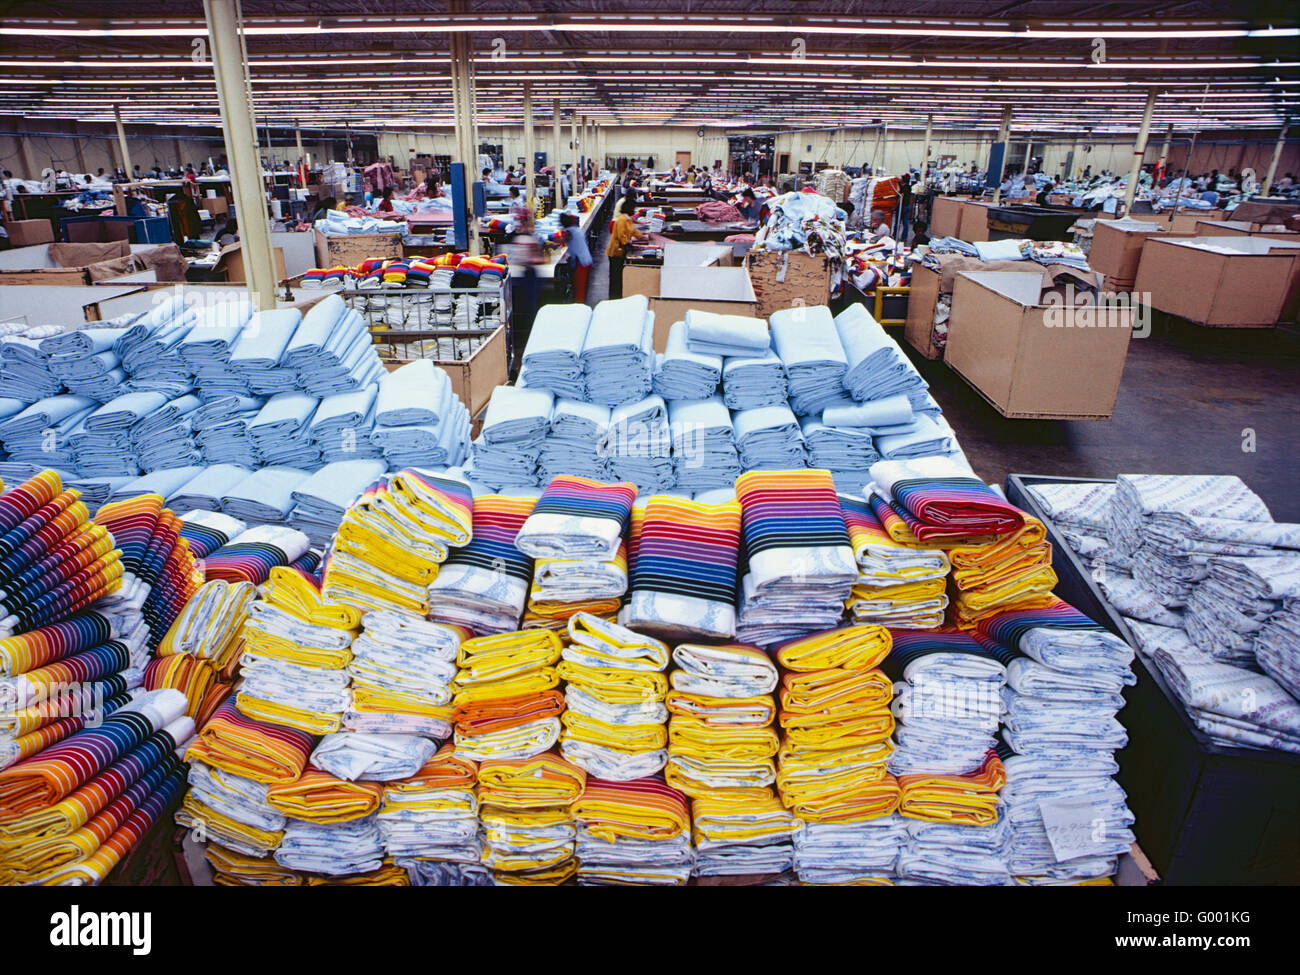 Stacks of colorful finished cotton sheets in a garment manufacturing facility - Stock Image